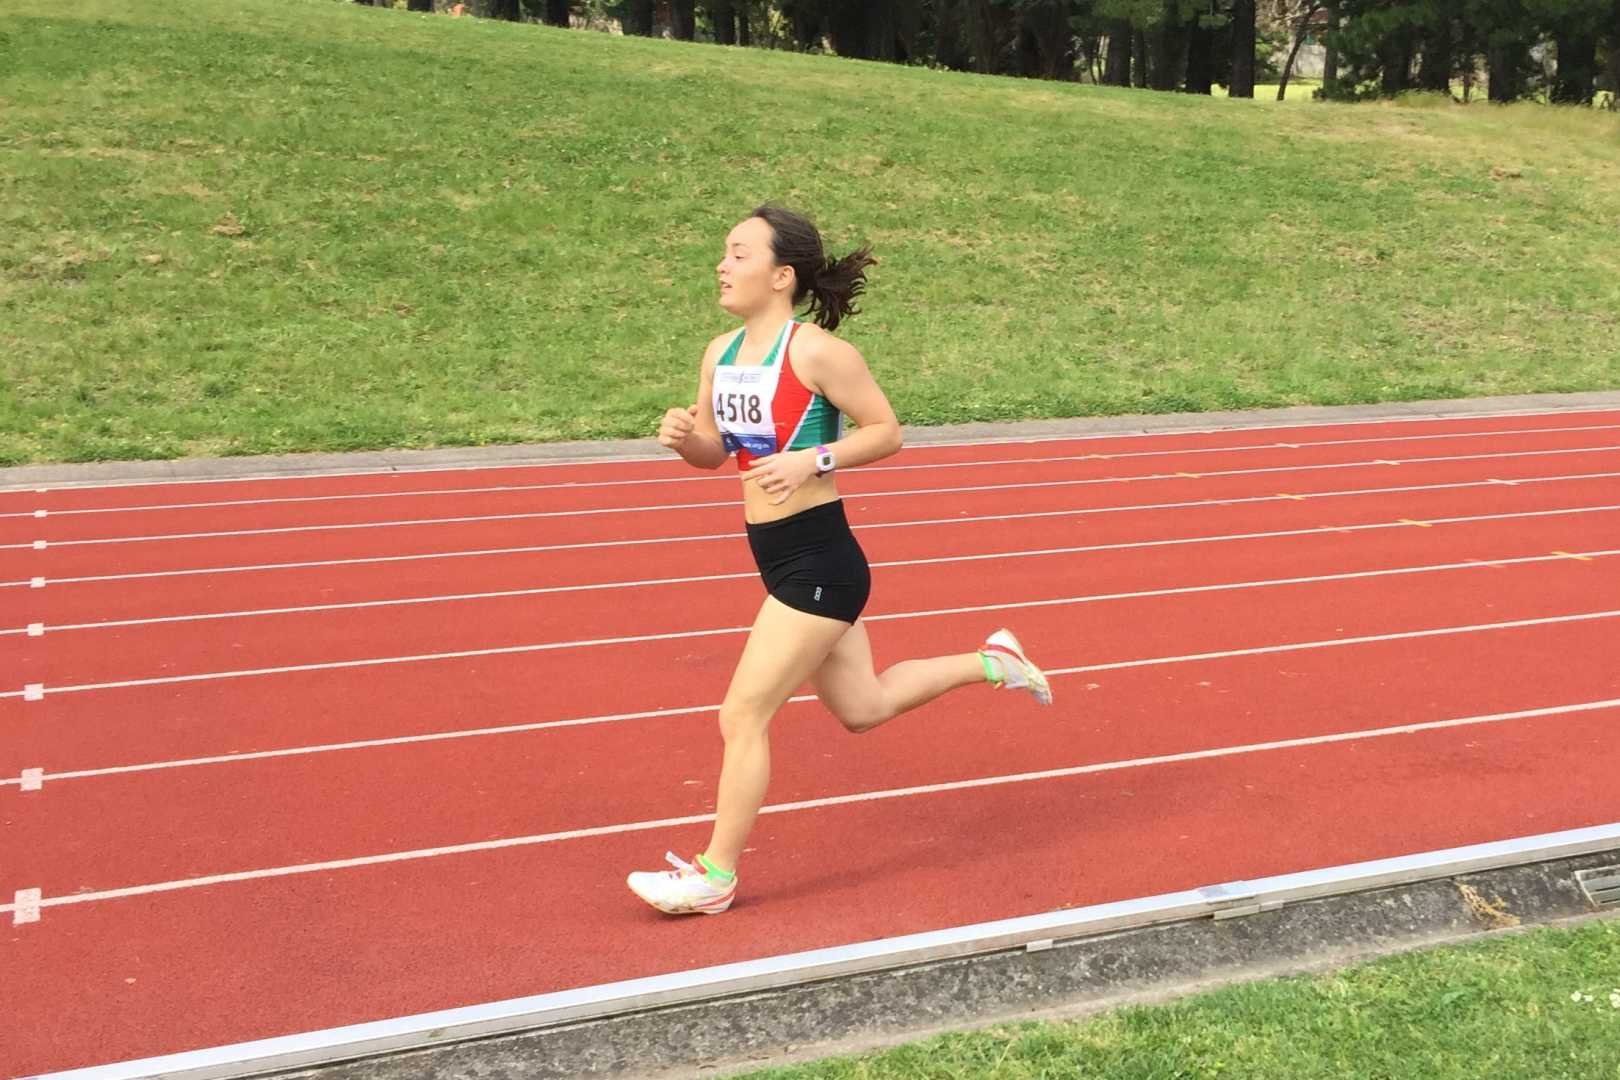 Great run by Stella in the 800m